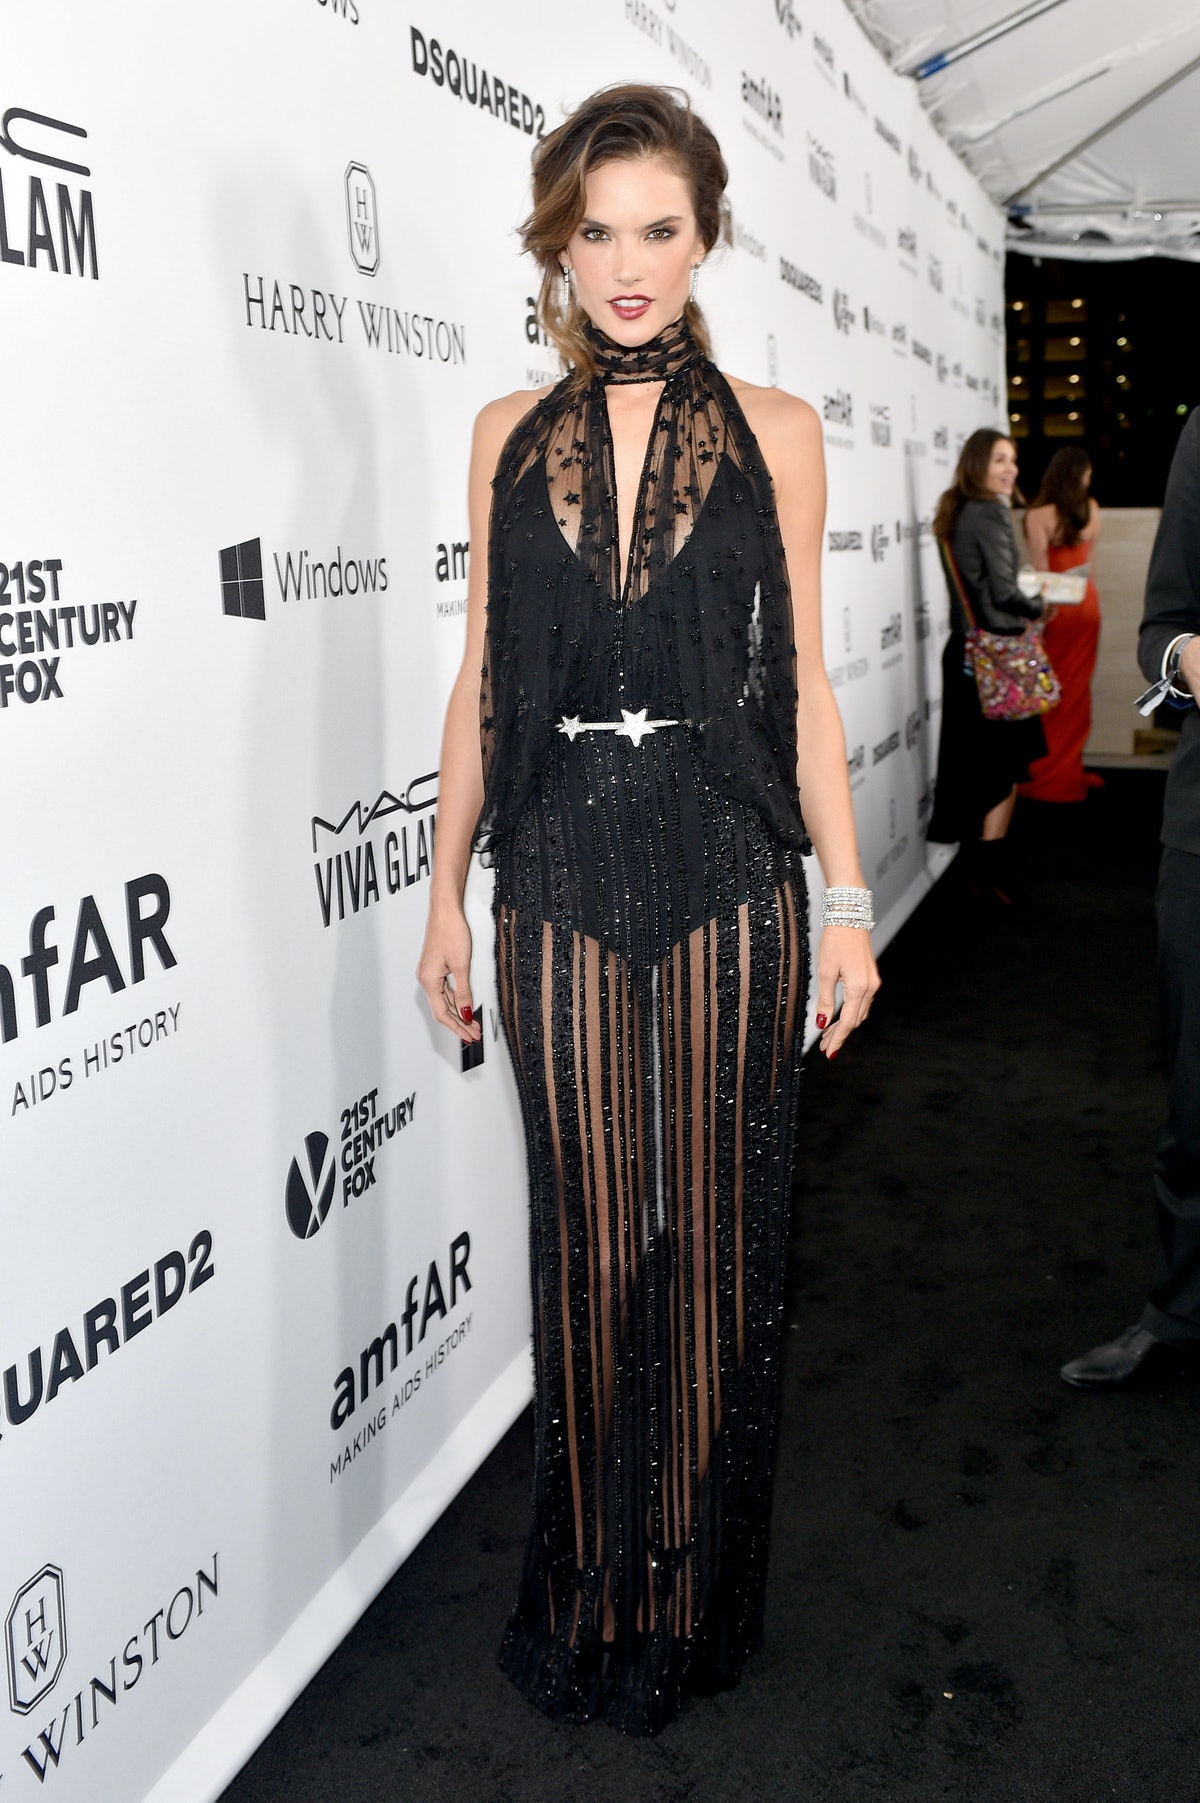 PRIVATE - Harry Winston At amfAR's Inspiration Gala Los Angeles - INTERNAL ONLY